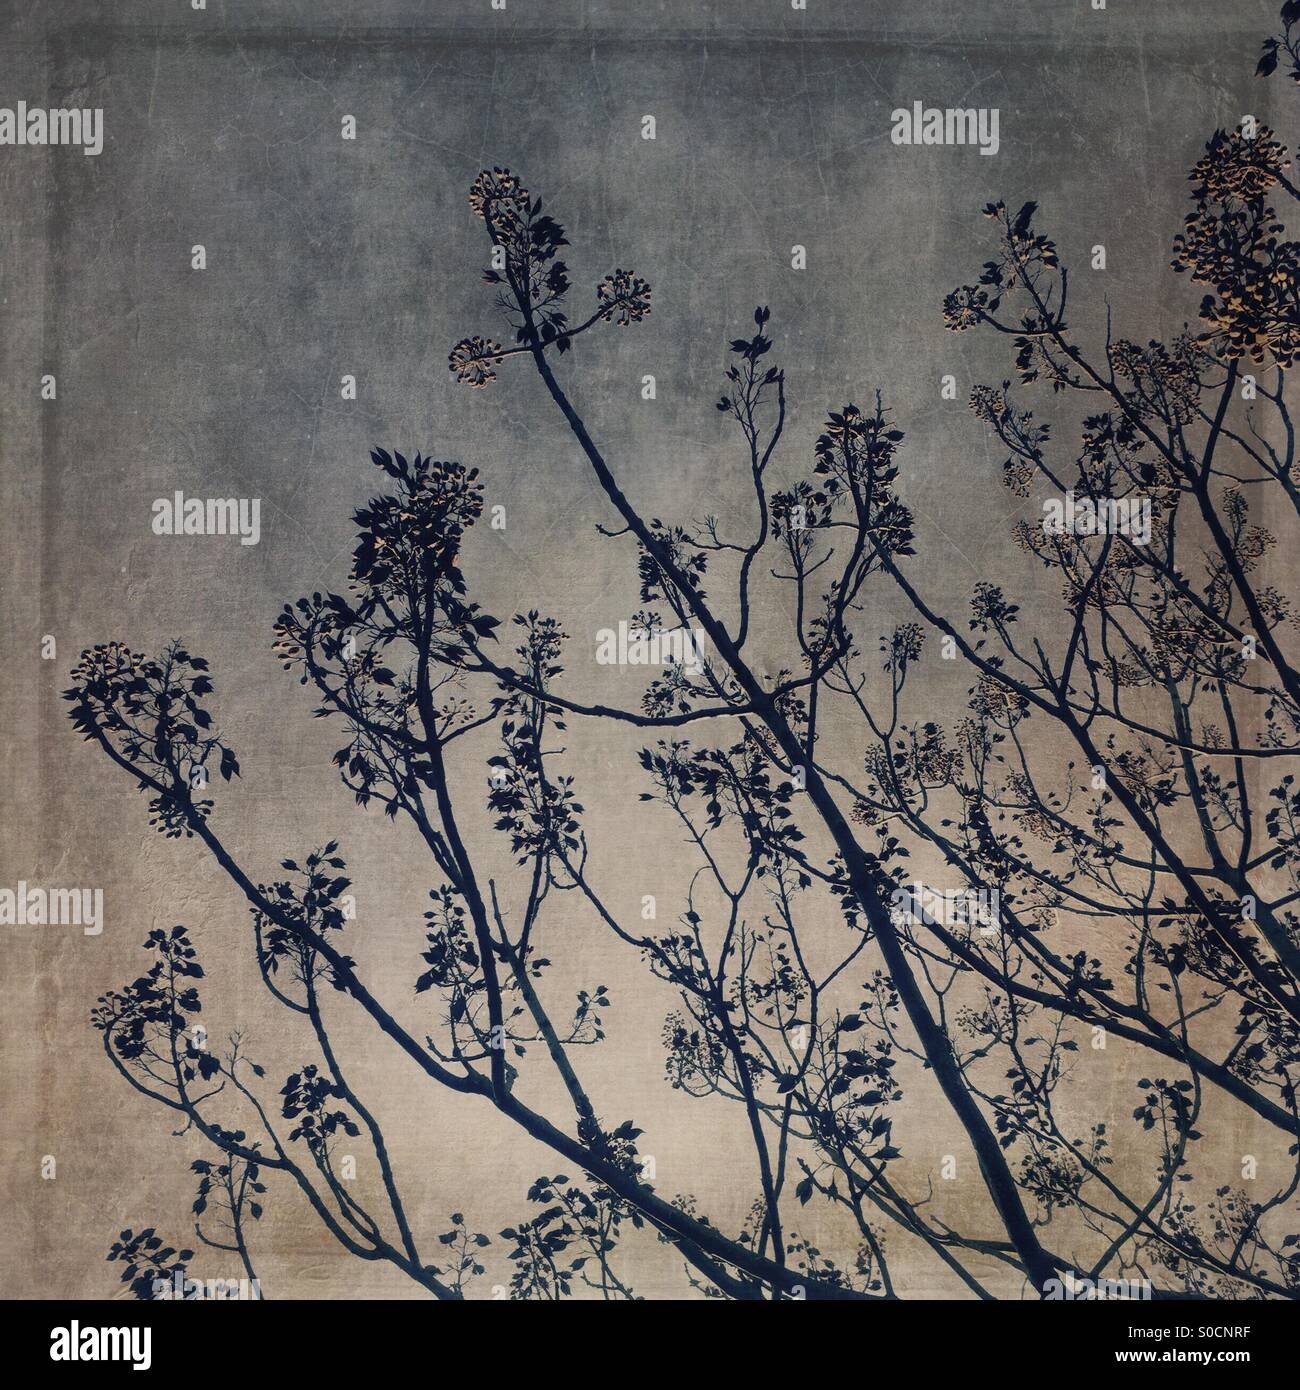 Branches, twigs, leaves and flowers with vintage,  cracked paint and paper texture overlay. - Stock Image